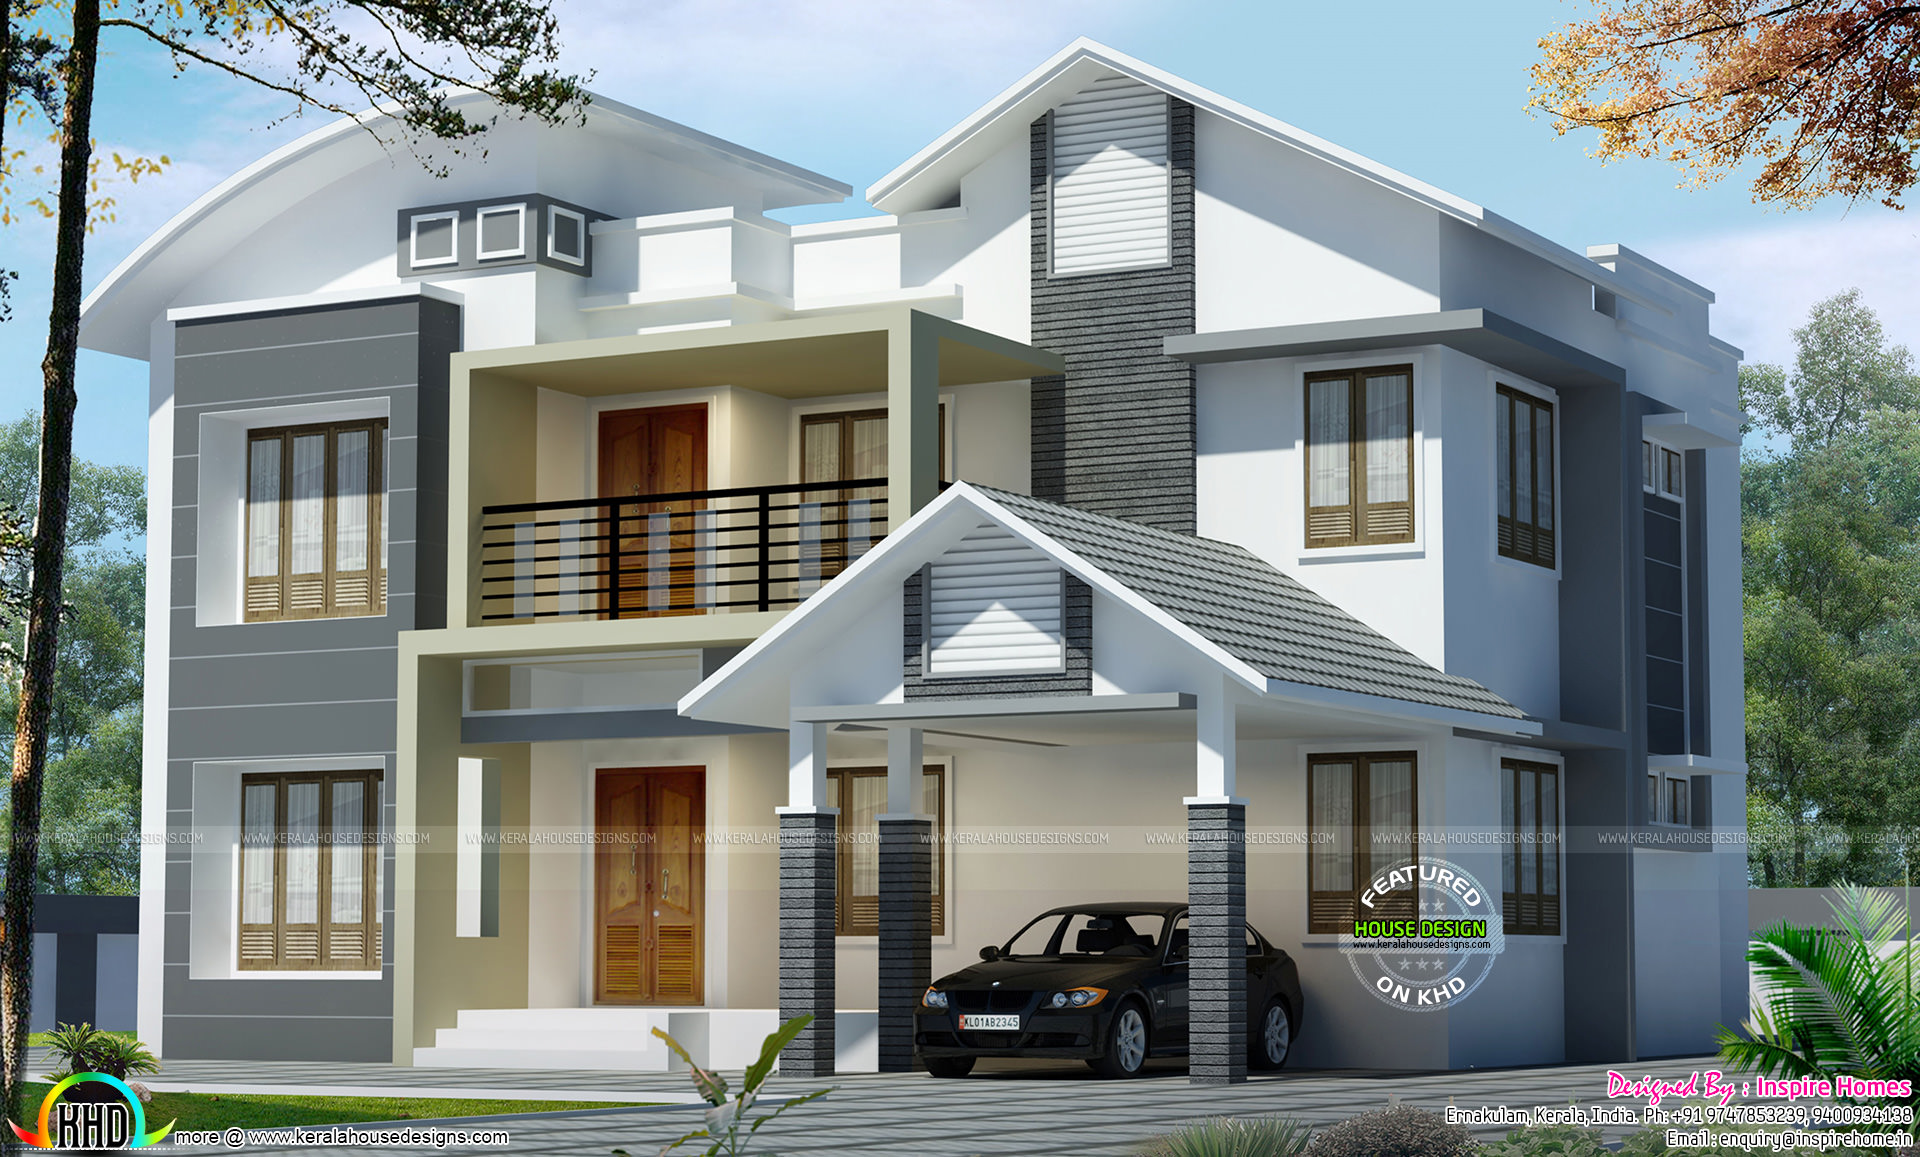 Curved Roof Mix Modern House Kerala Home Design And